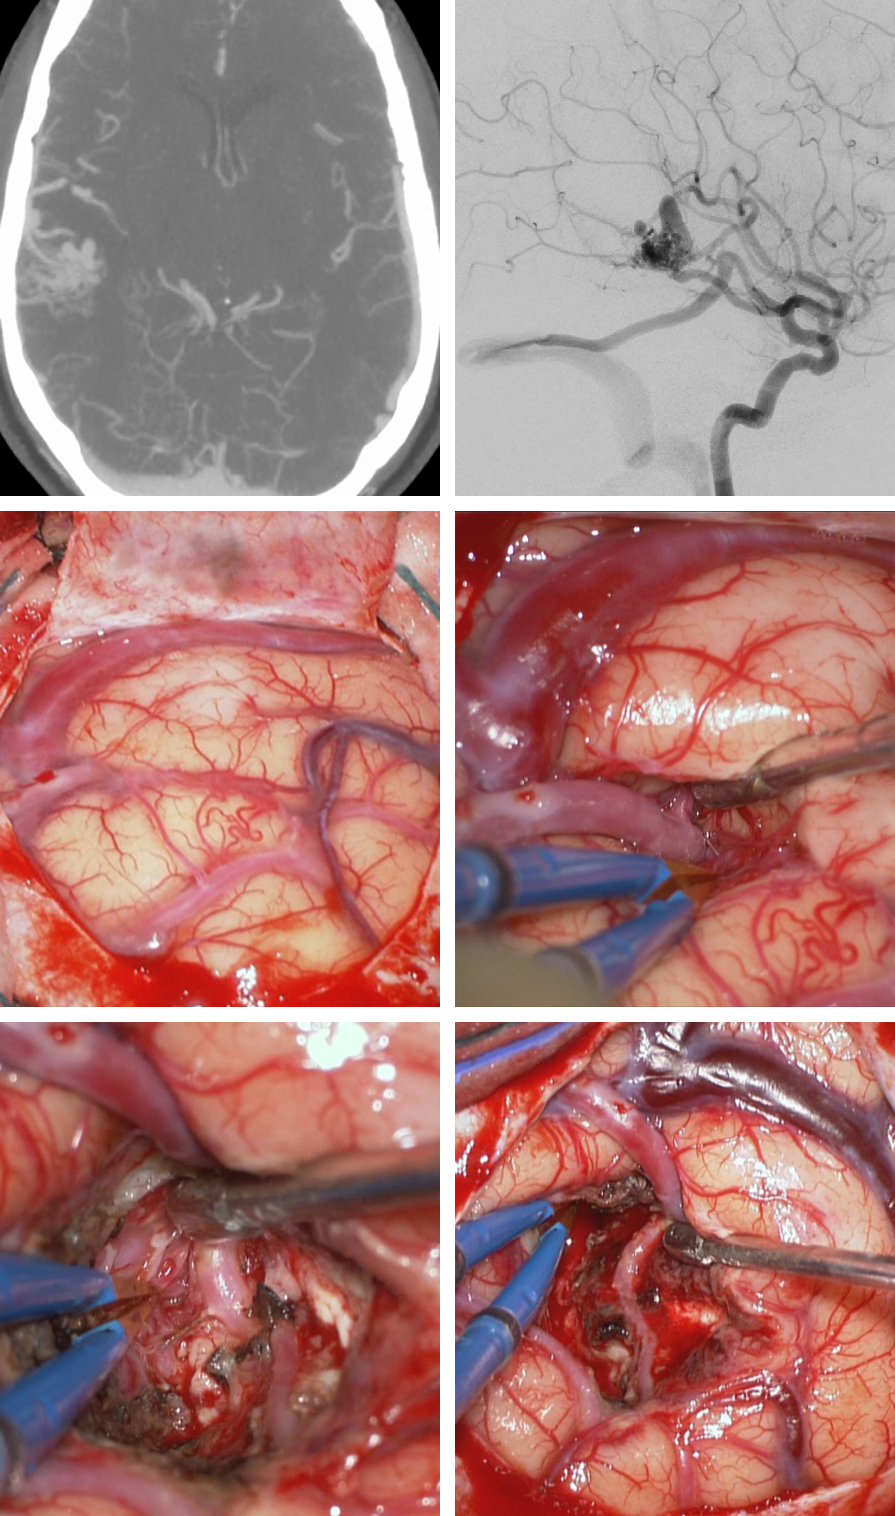 Figure 6: A ruptured lateral temporal AVM underwent resection. Note the large arterialized vein of Labbe (first row). A right temporal craniotomy was completed using a linear incision and the large distal MCA feeding vessel was identified by means of intersulcal dissection(secondrow). This vessel was assumed to be  en passage  and provided numerous feeders to the AVM along its length. The nidus was situated just superior to this  en passage  artery;the artery was skeletonized and the nidus removed (last row). Note the darker vein of Labbe at the end of resection. The preservation of  en passage  arteries is important for avoidance of distal ischemia.